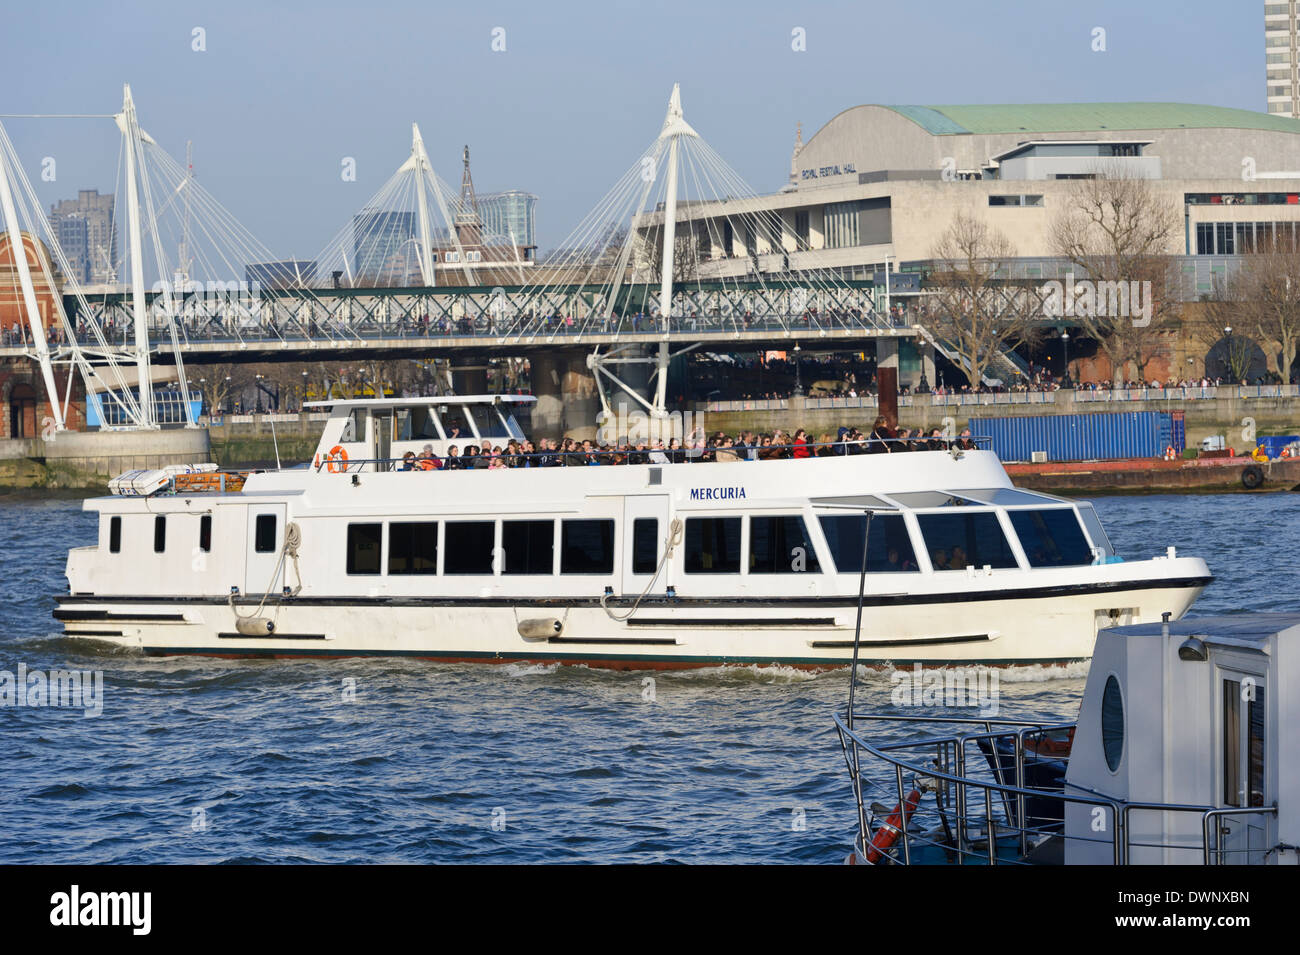 Tourists cruising on the Thames river with Hungerford bridge in background, London, England, United Kingdom. - Stock Image